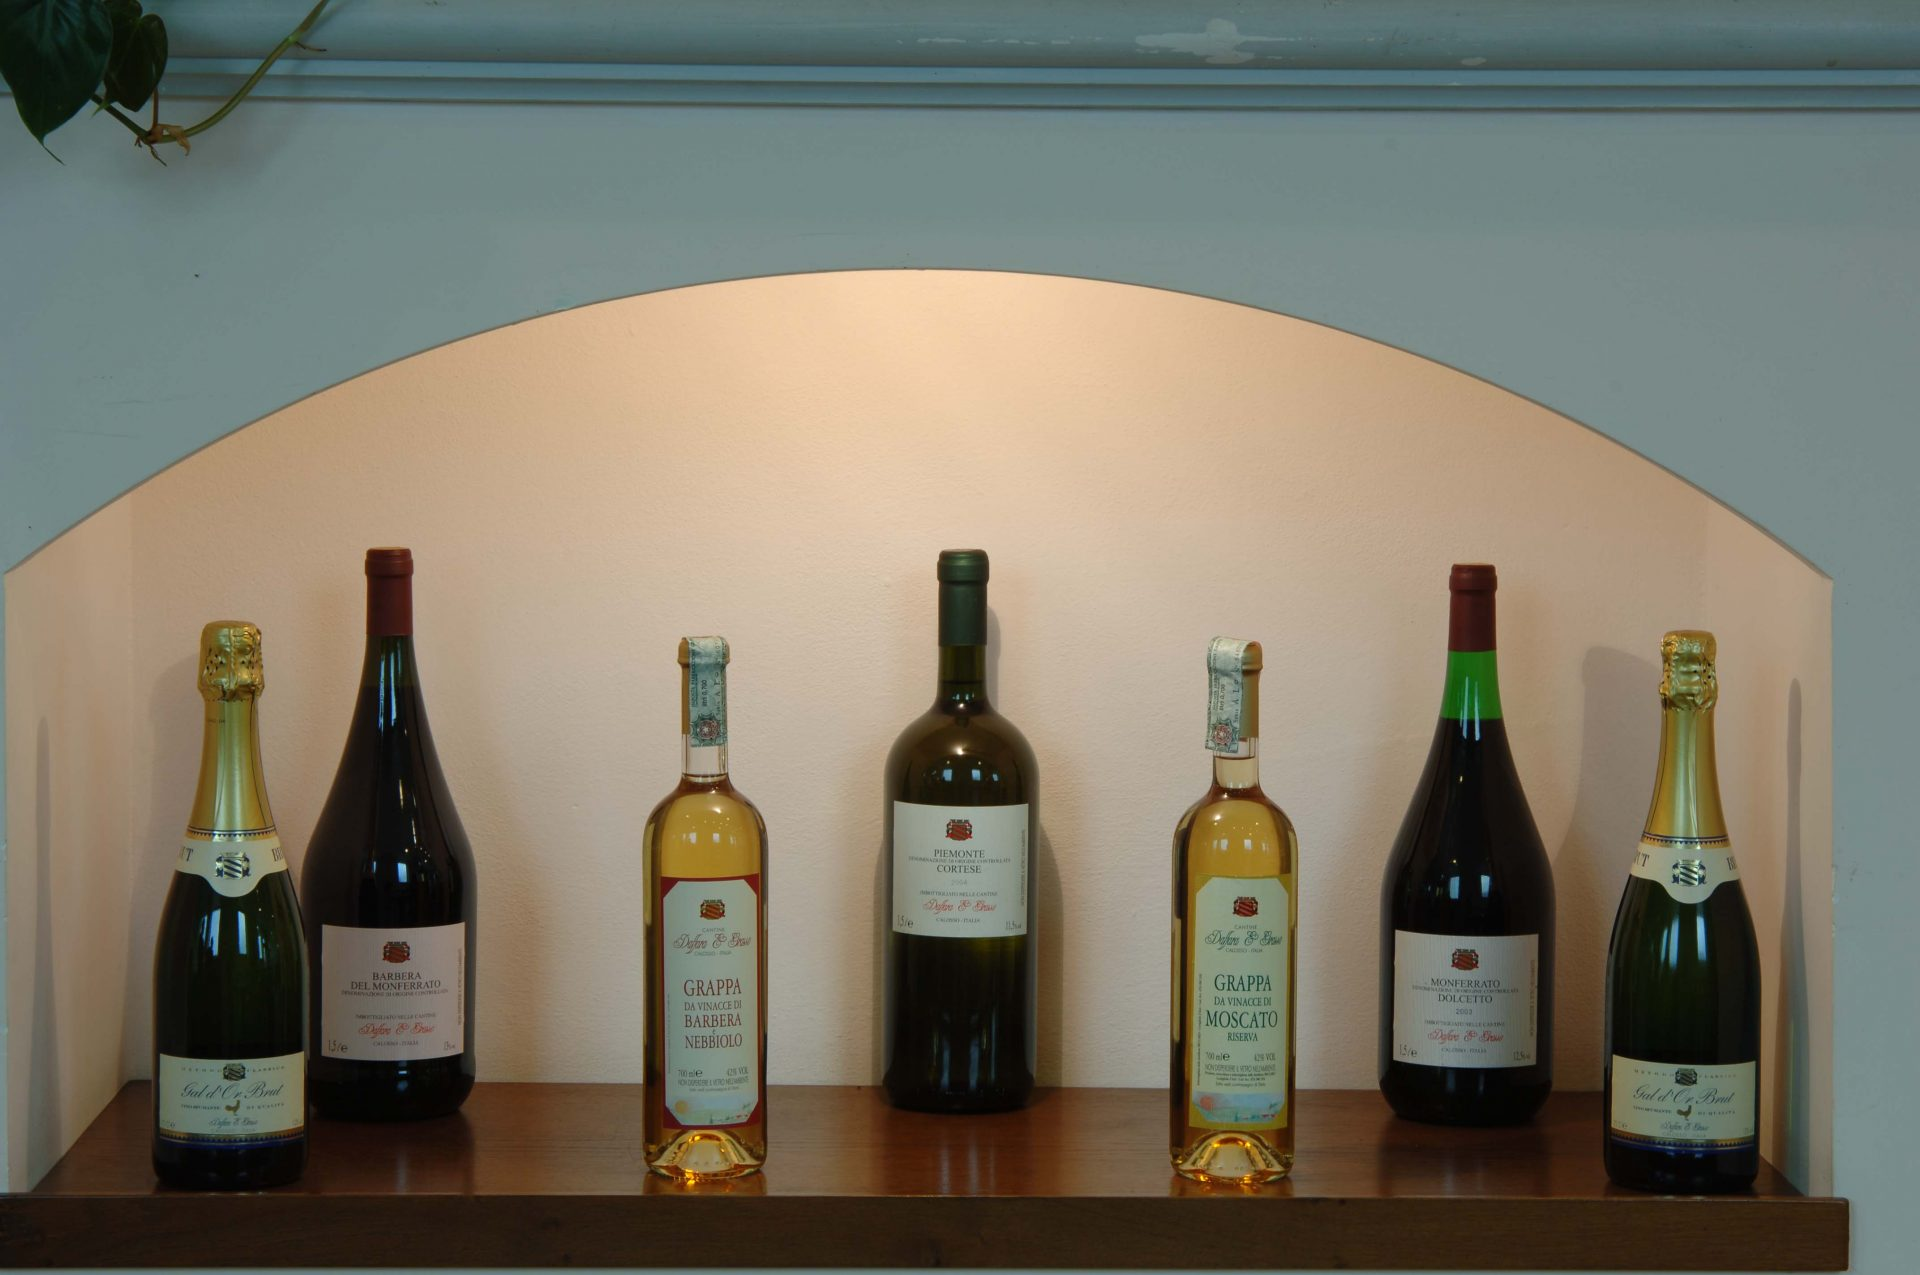 their wines